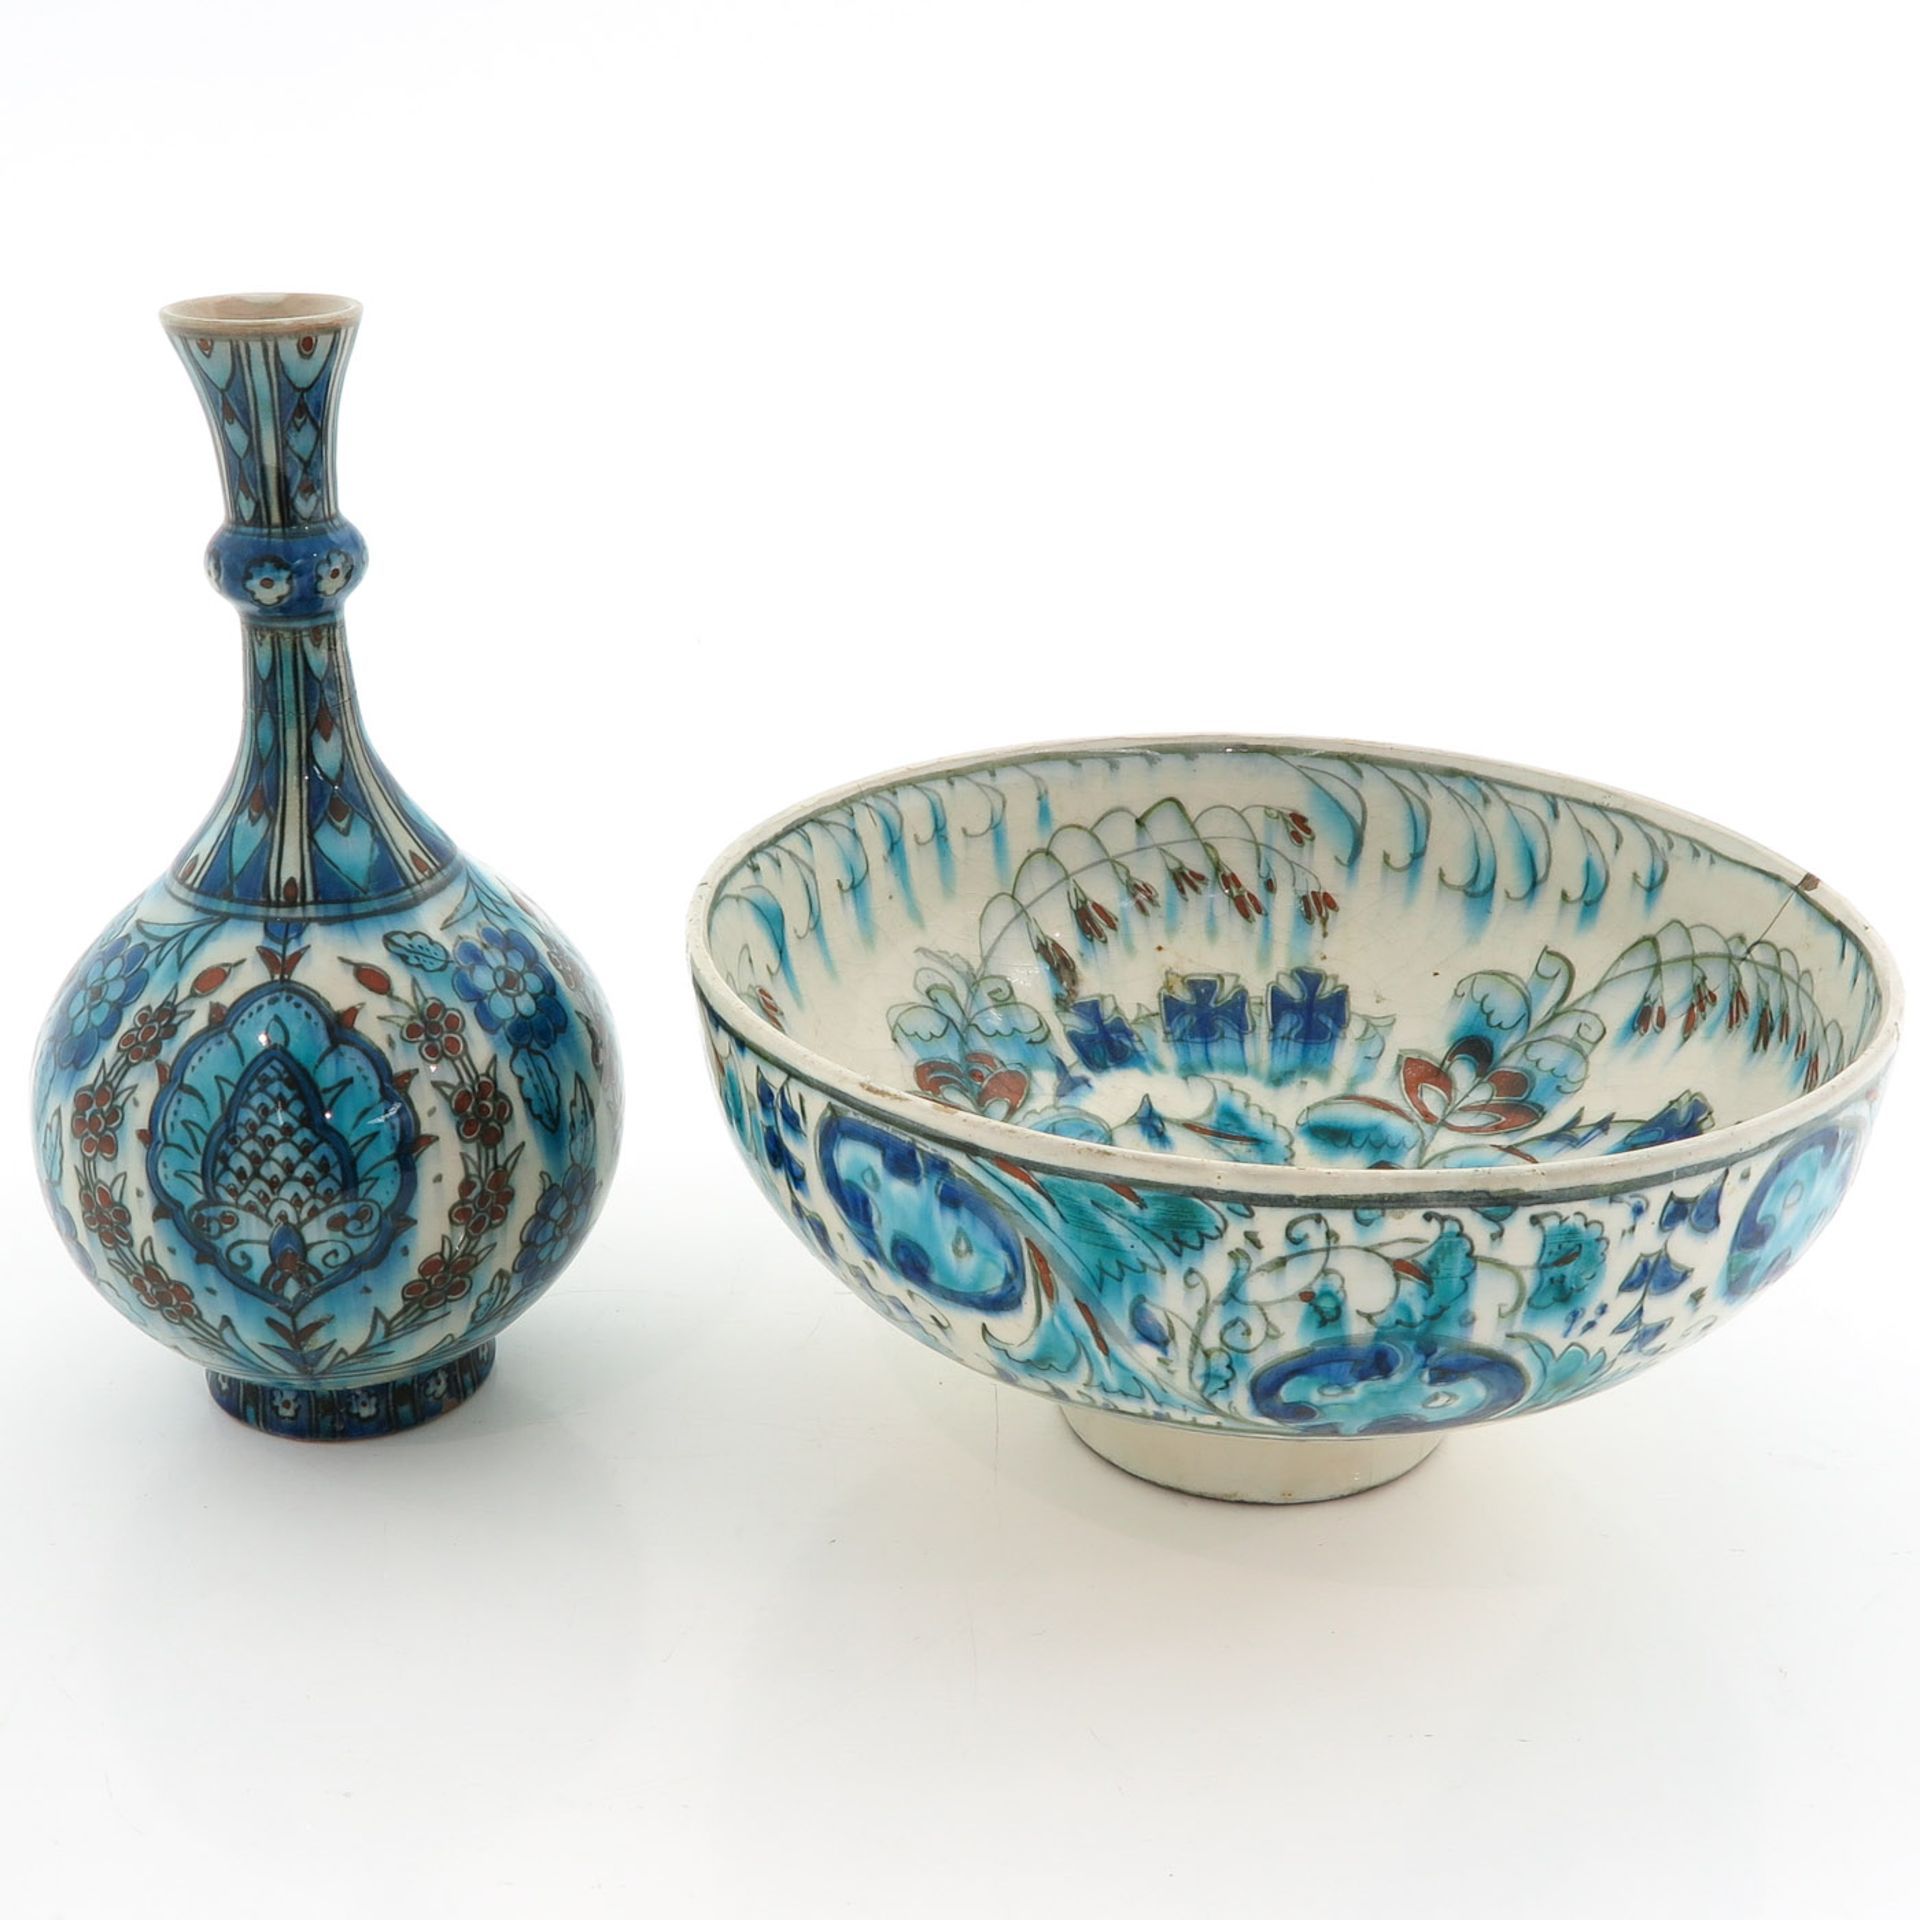 Los 1050 - A Collection of Dutch Pottery